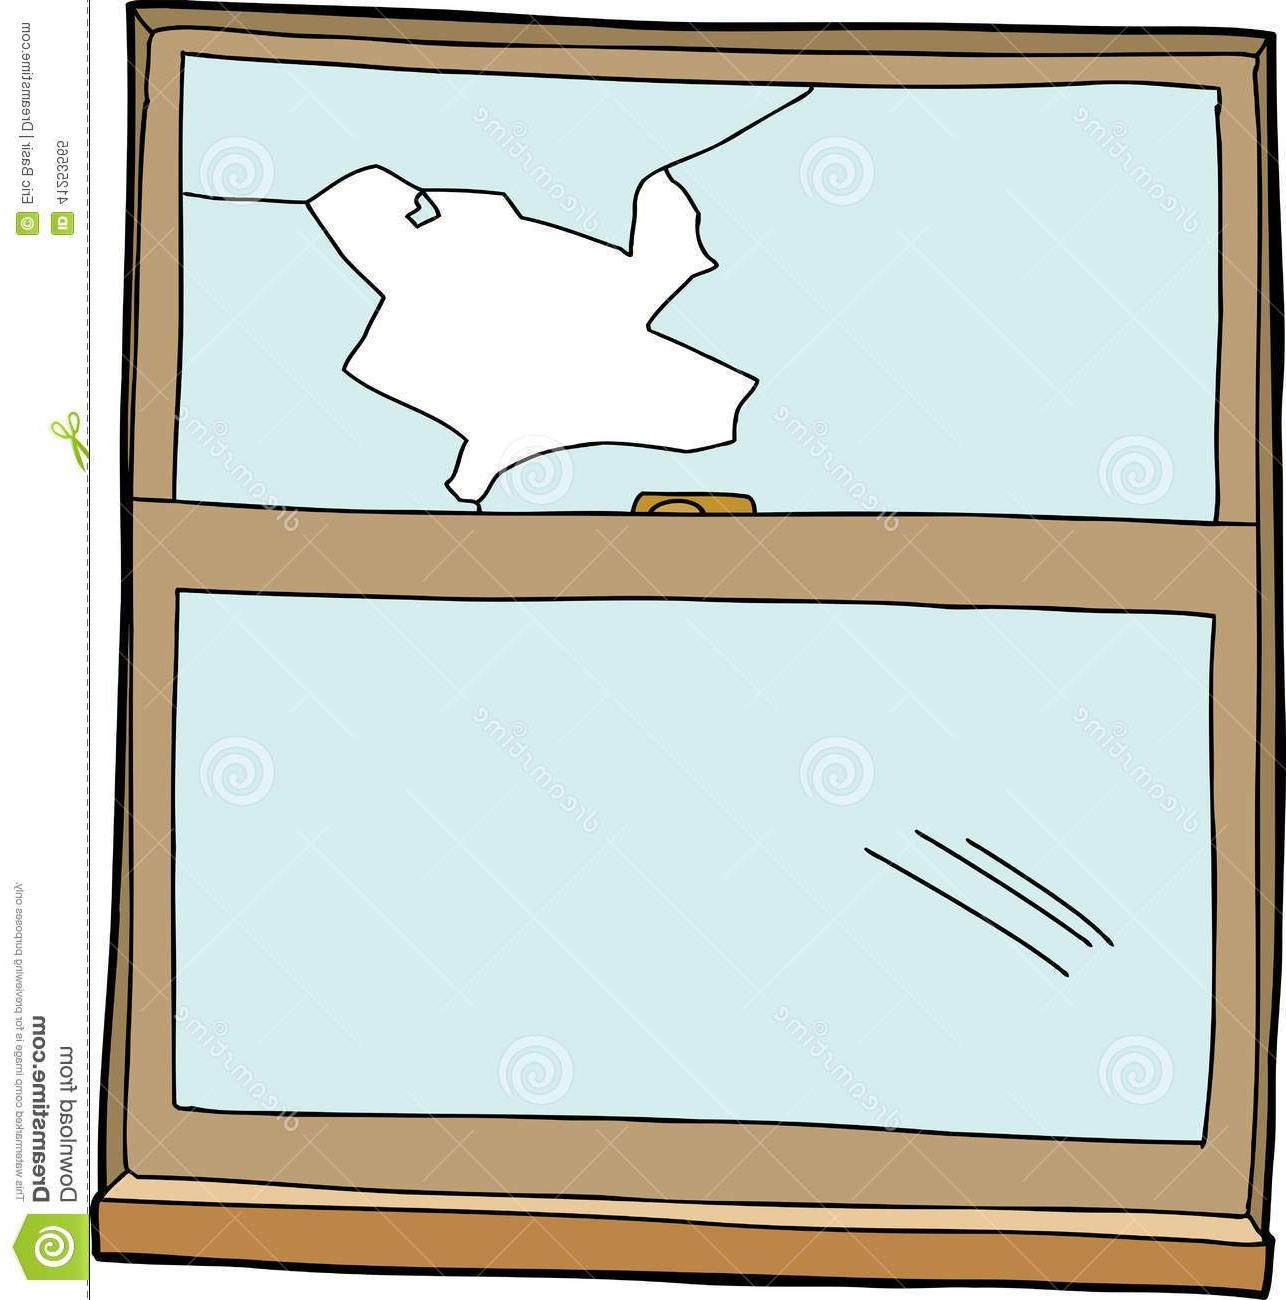 png transparent download Station . Broken clipart broken window.